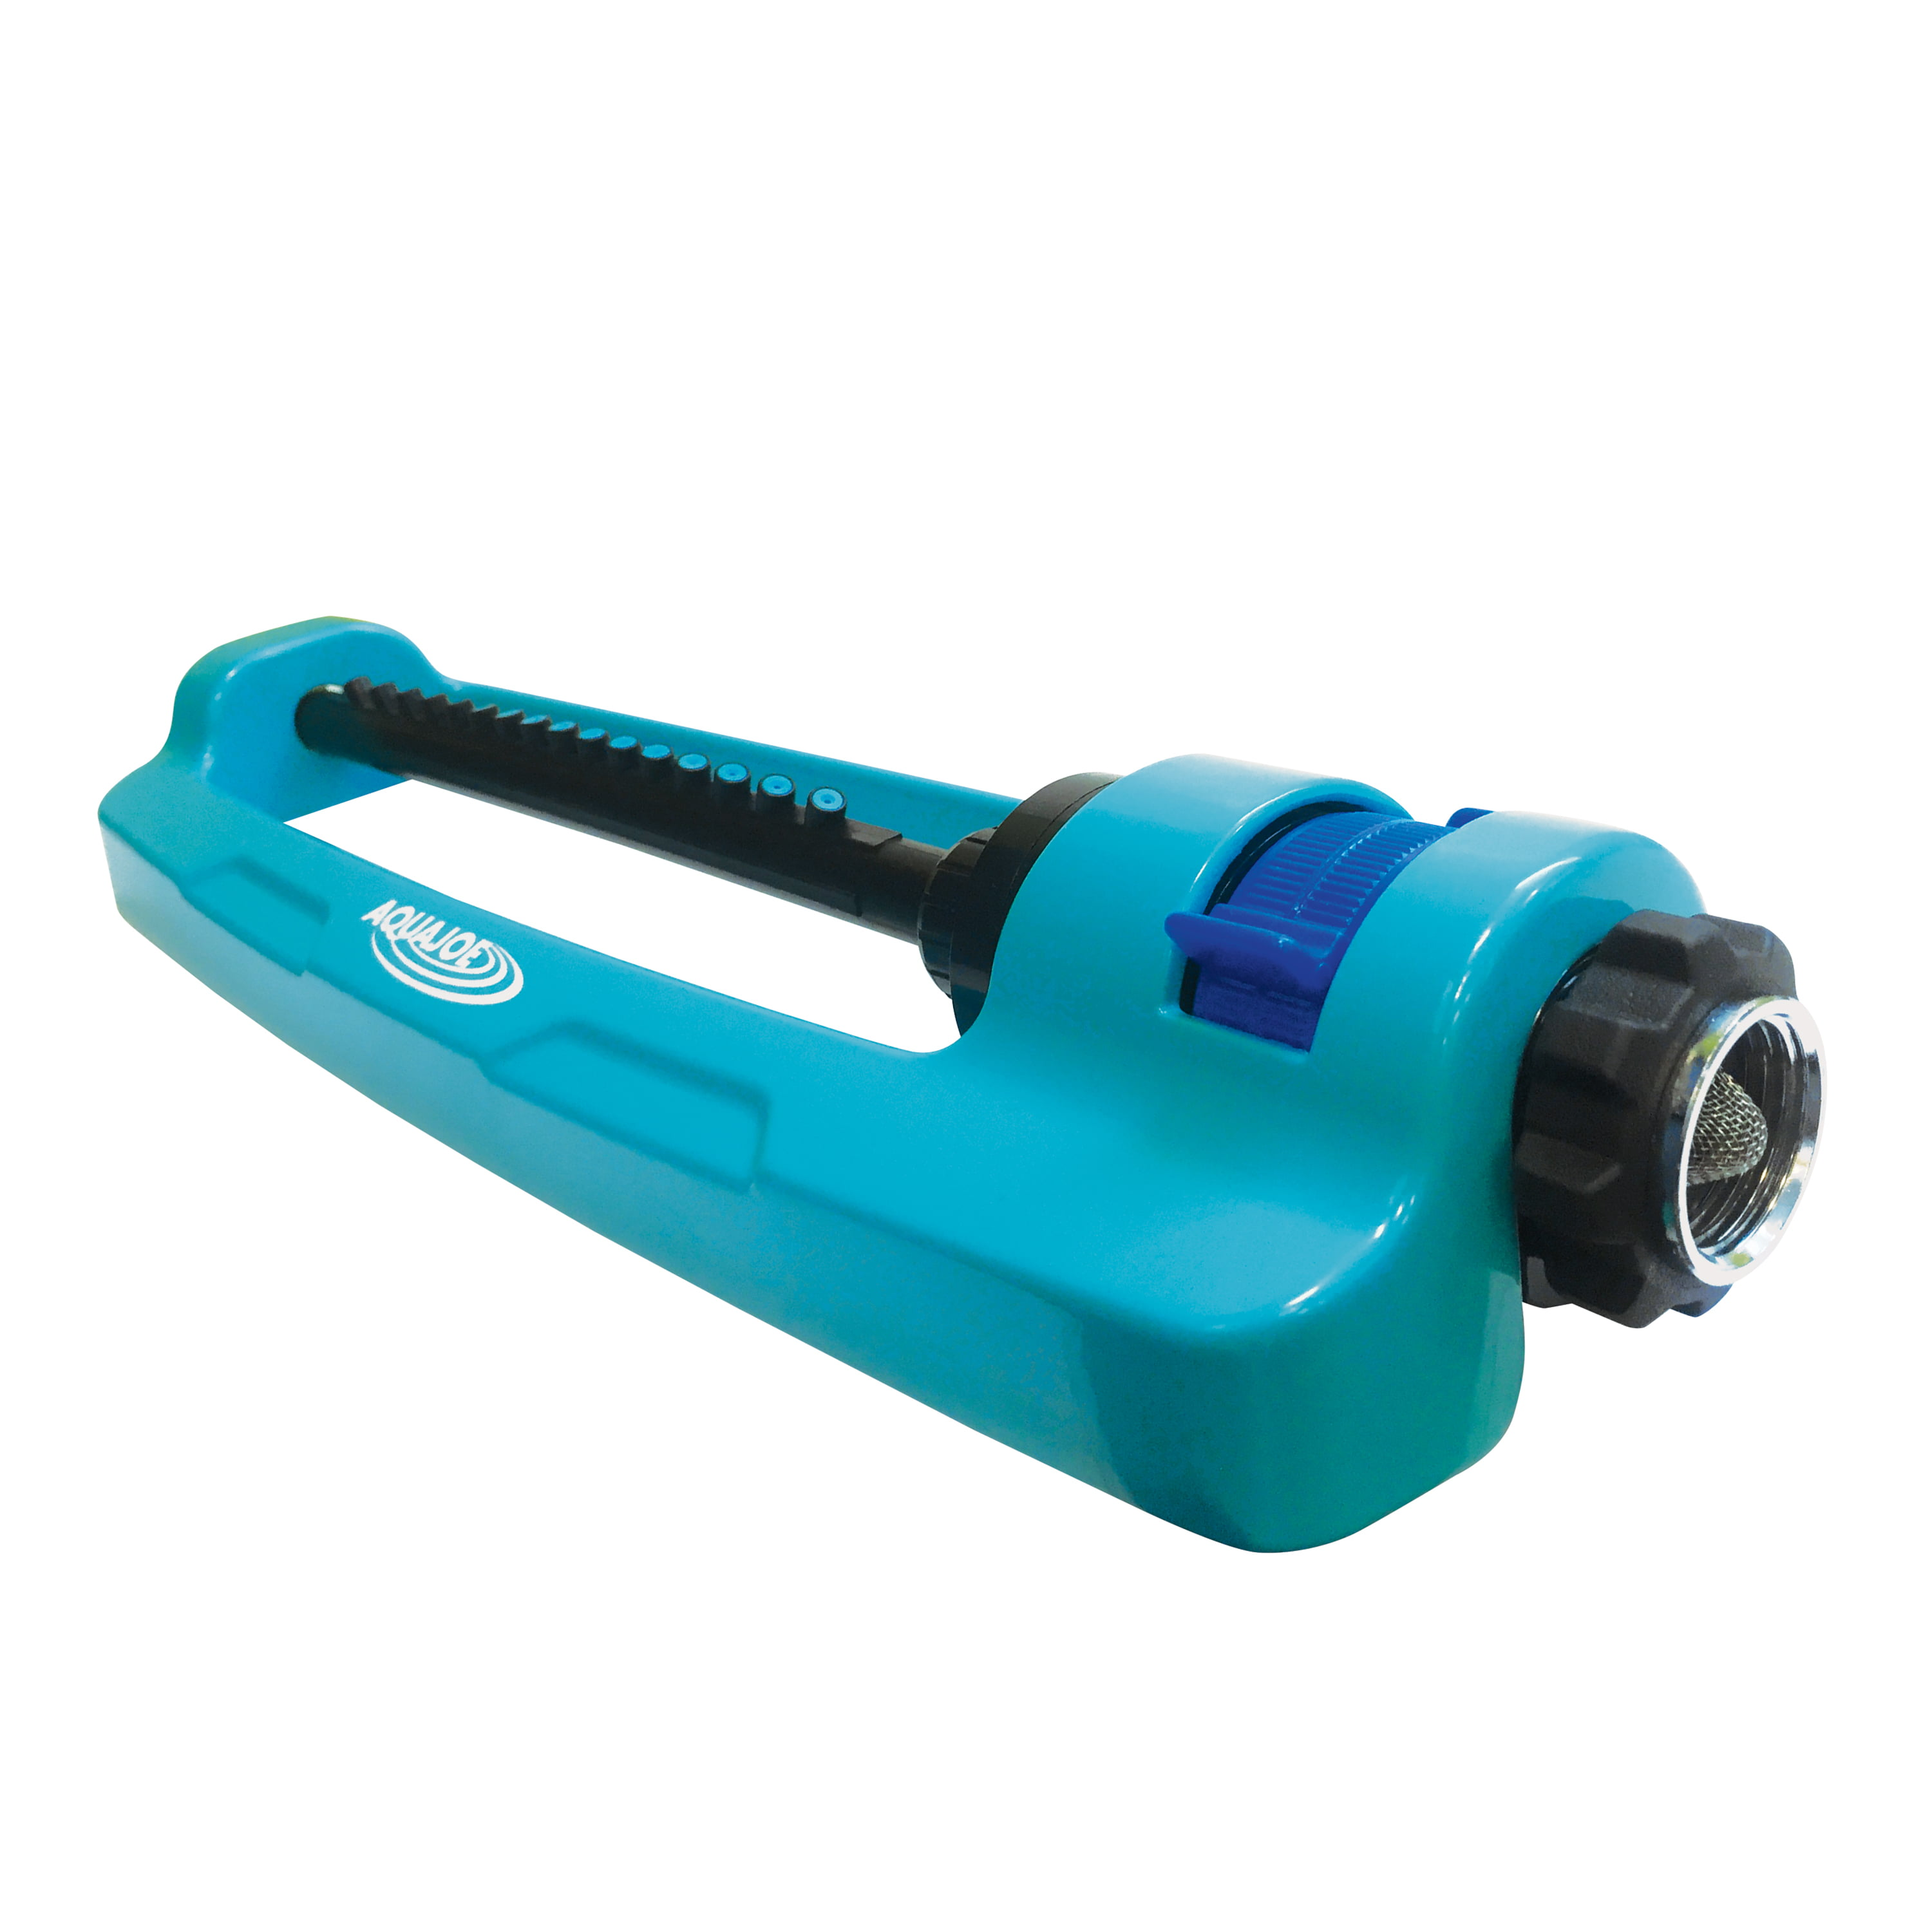 Sun Joe SJI-OMS16 Indestructible Metal Base Oscillating Sprinkler with Adjustable Spray by Snow Joe LLC